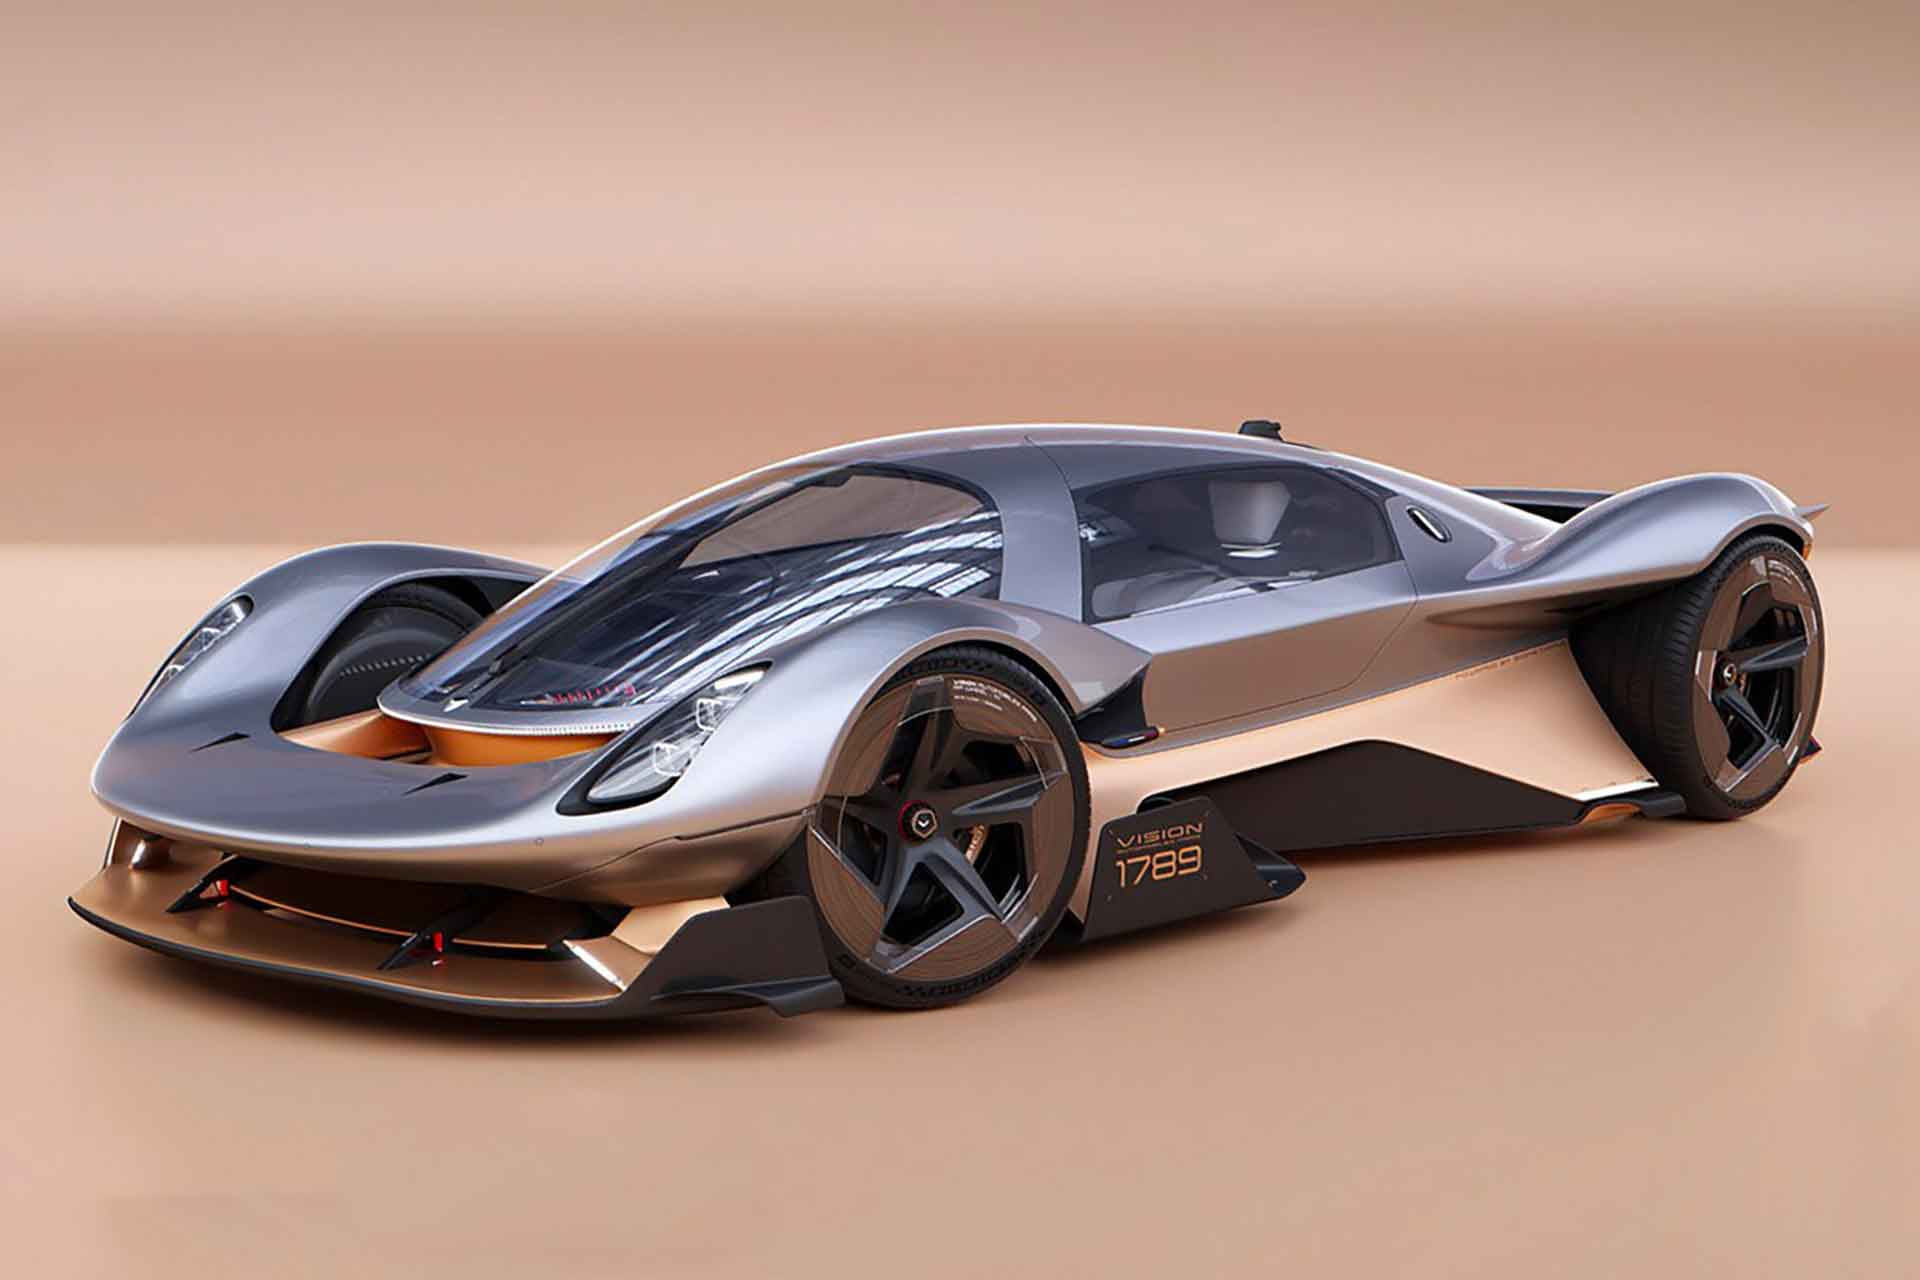 Vision 1789 Sports Car | Uncrate